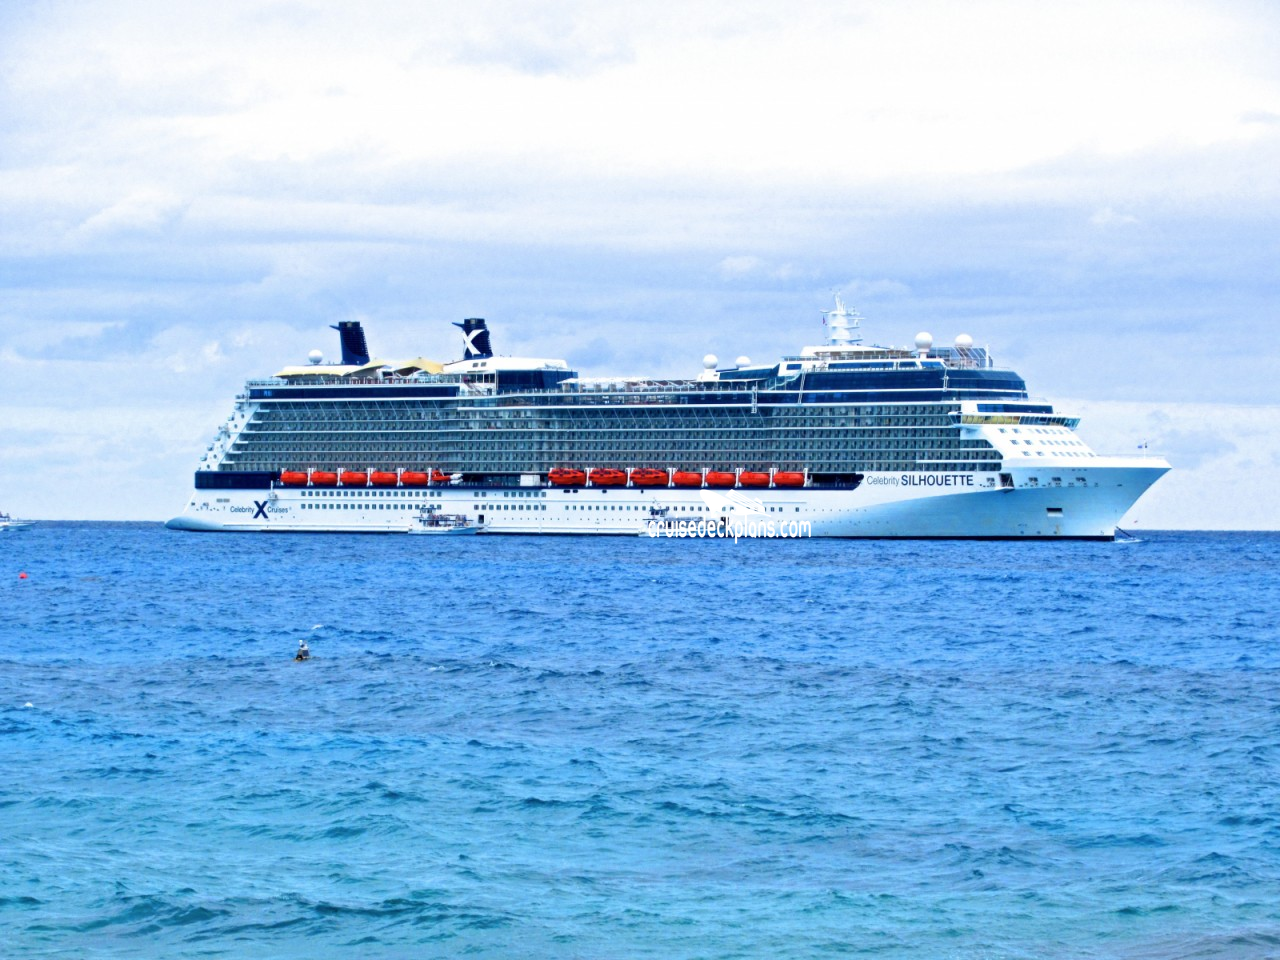 Celebrity Silhouette Cruise Ship Pictures 2019 - Cruise Critic